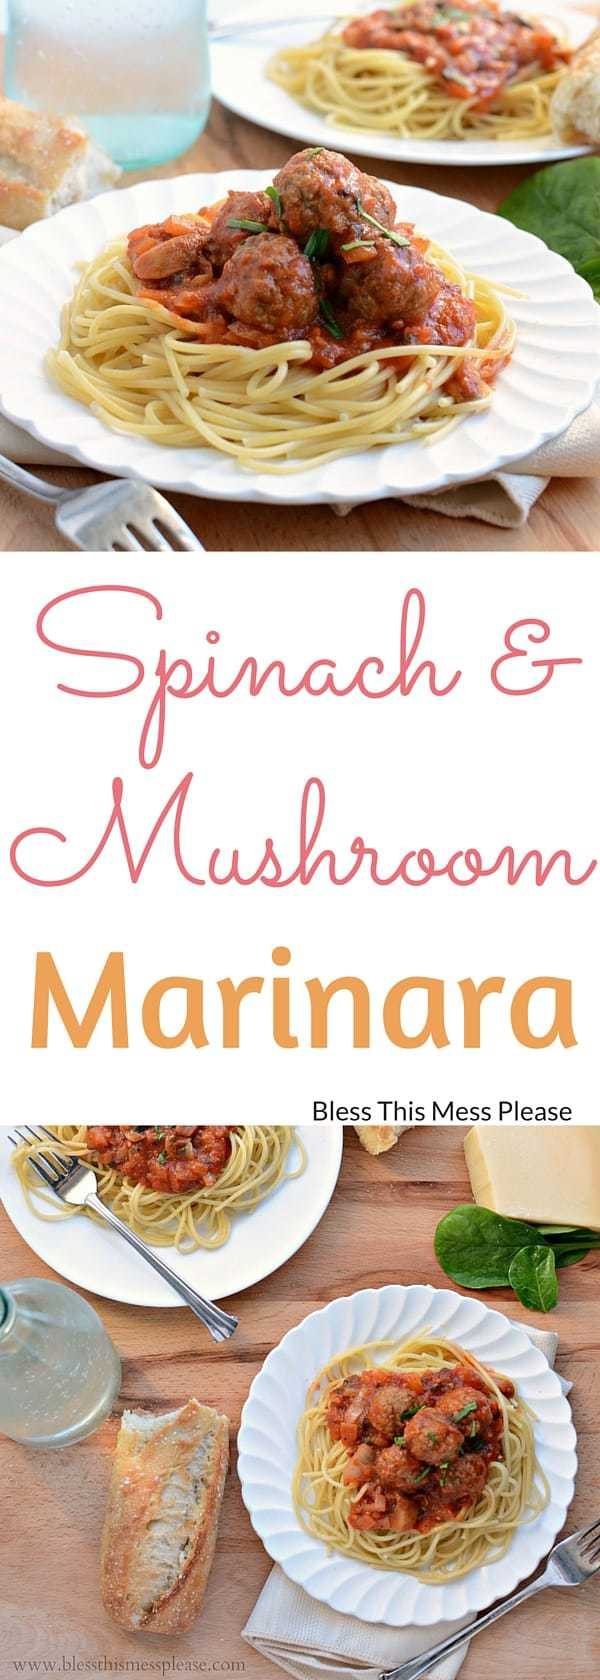 Spinach and Mushroom Marinara